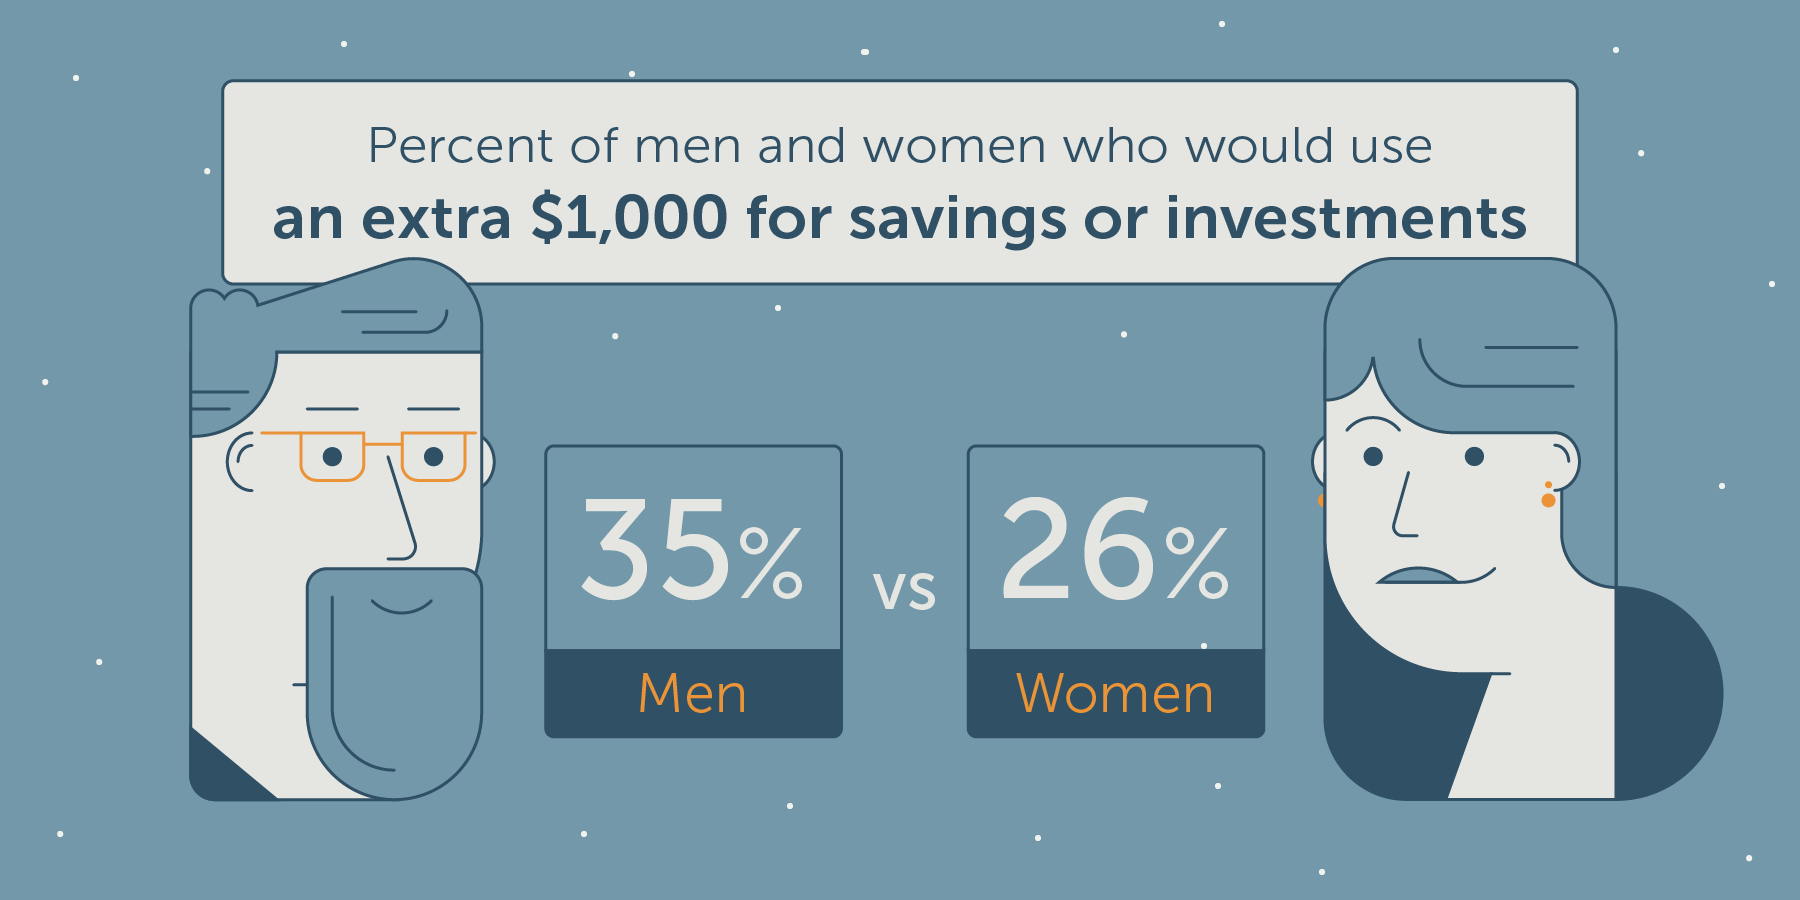 men are more likely to save money than women